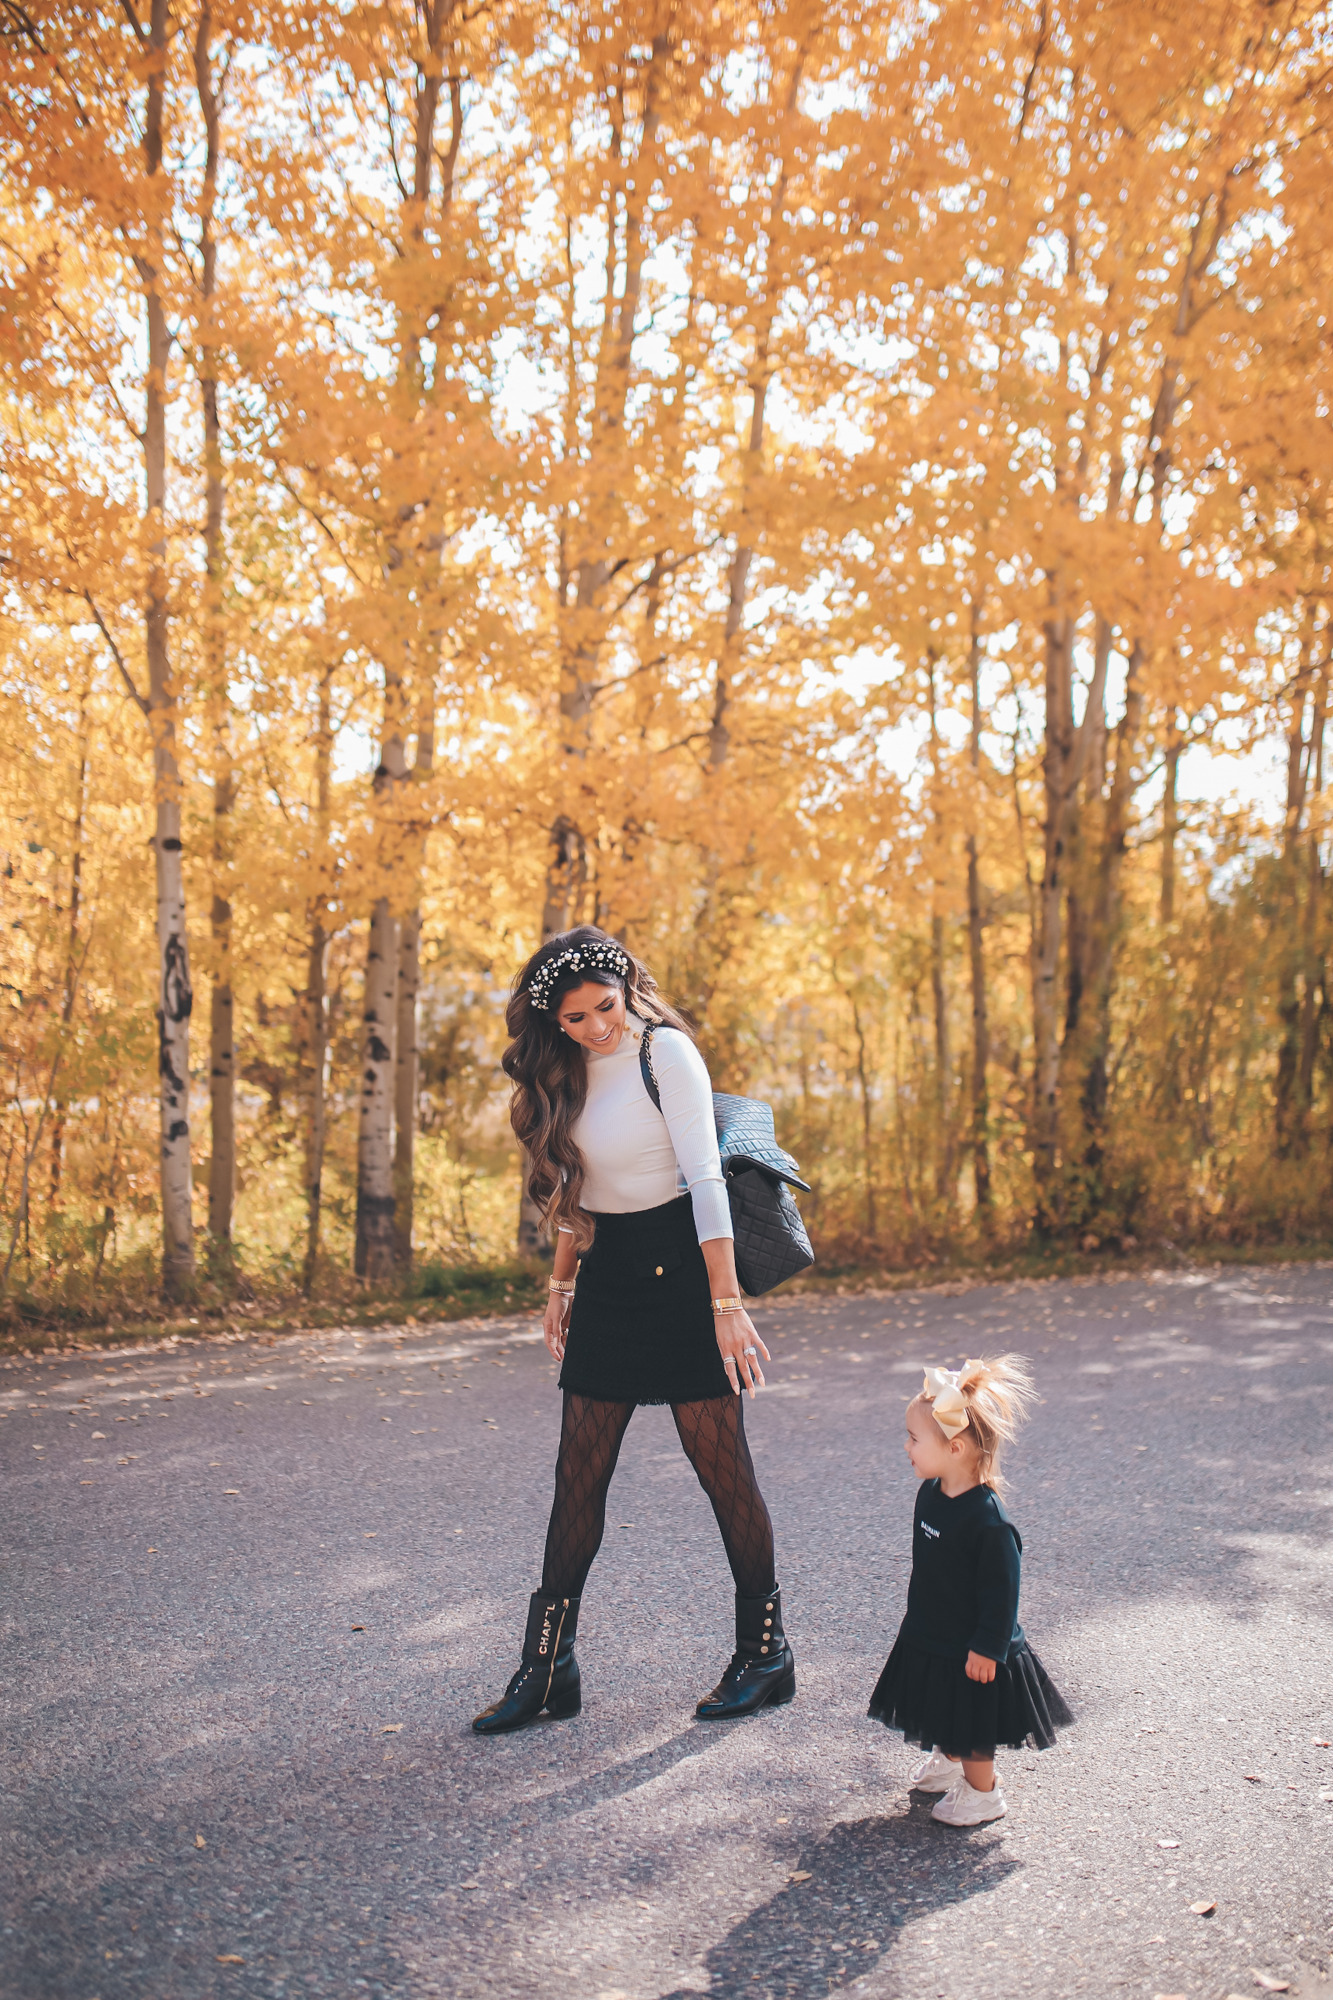 fall fashion pinterest outfits 2020, chanel combat boots black, tweed skirt with gucci tights, emily gemma, JPG |fall fashion pinterest outfits 2020, express fall fashion, emily gemma, baby girl fall outfits | Fall Clothing by popular US fashion blog, The Sweetest Thing: image of Emily Gemma walking outside with her young daughter and wearing a Express Novelty Button Mock Neck Top, Express High Waisted A-Line Tweed Mini Skirt, Chanel boots, Gucci tights, Cartier bracelet and pearl knot headband.